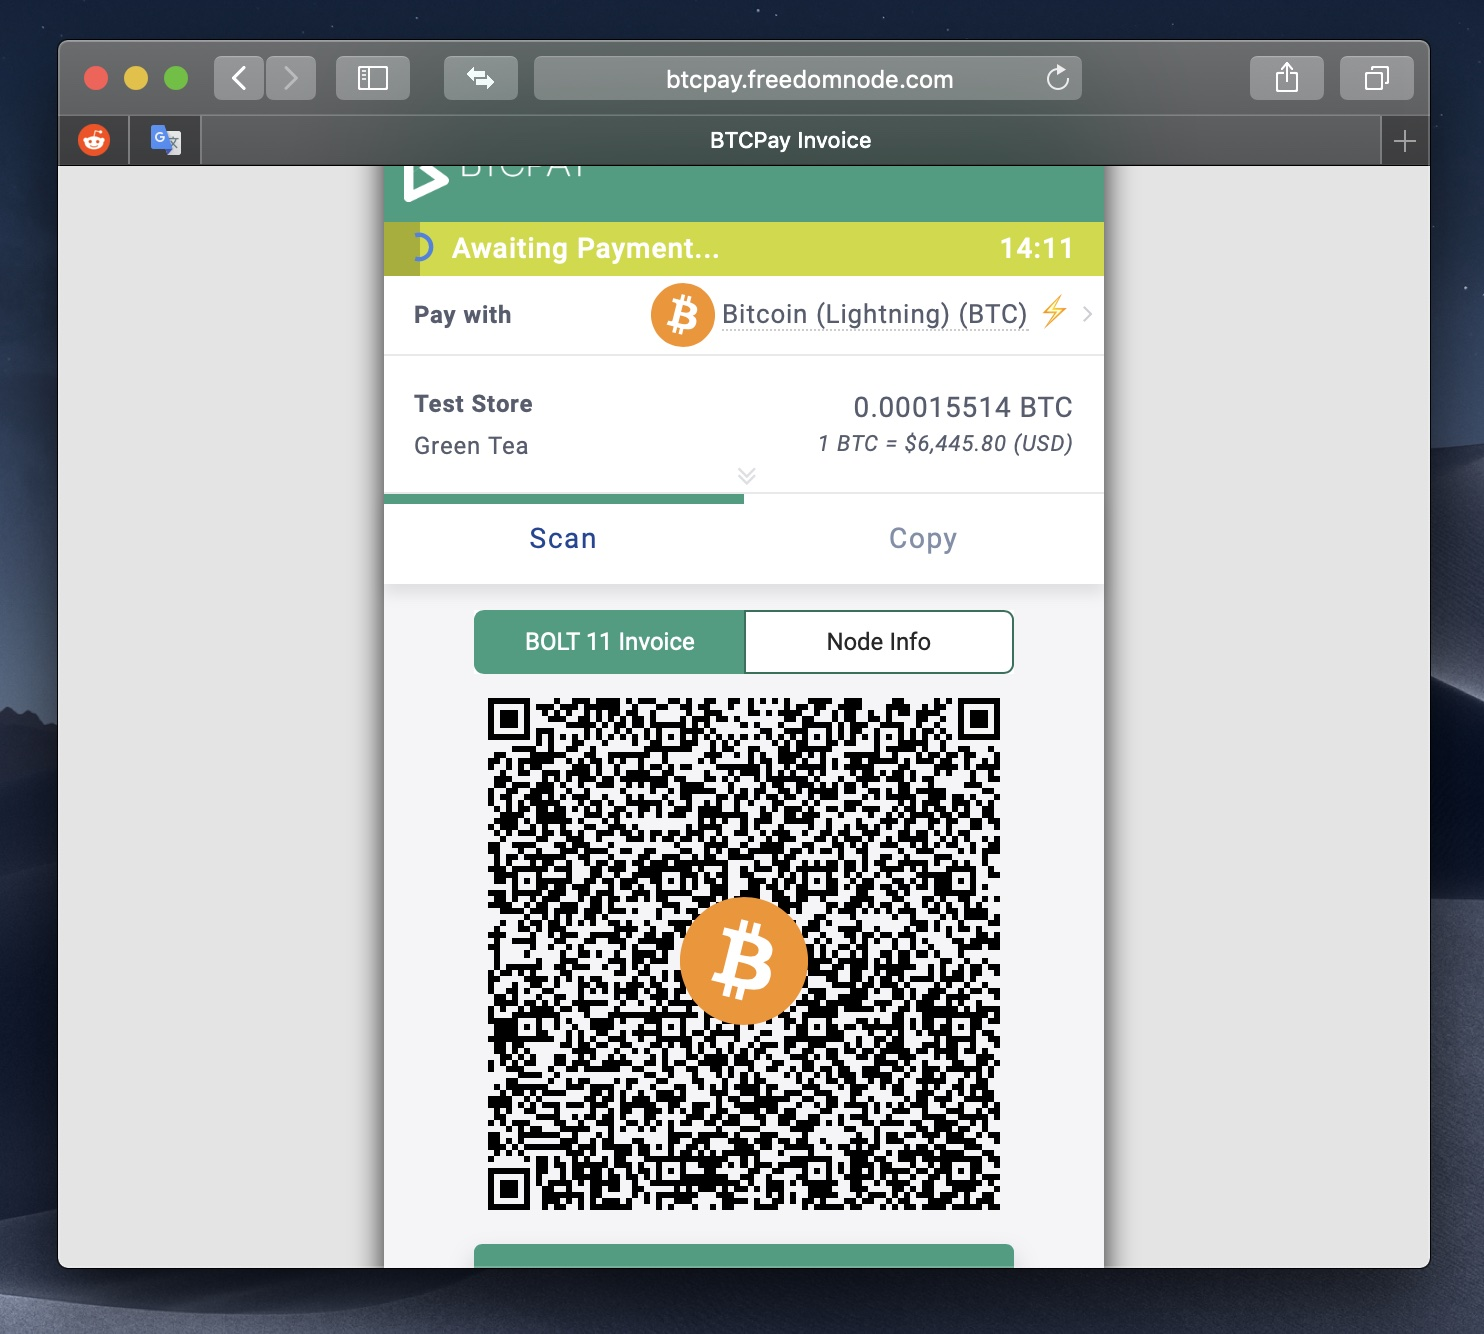 BTCPay's payment gateway supporting BTC both on-chain and via Lightning Network